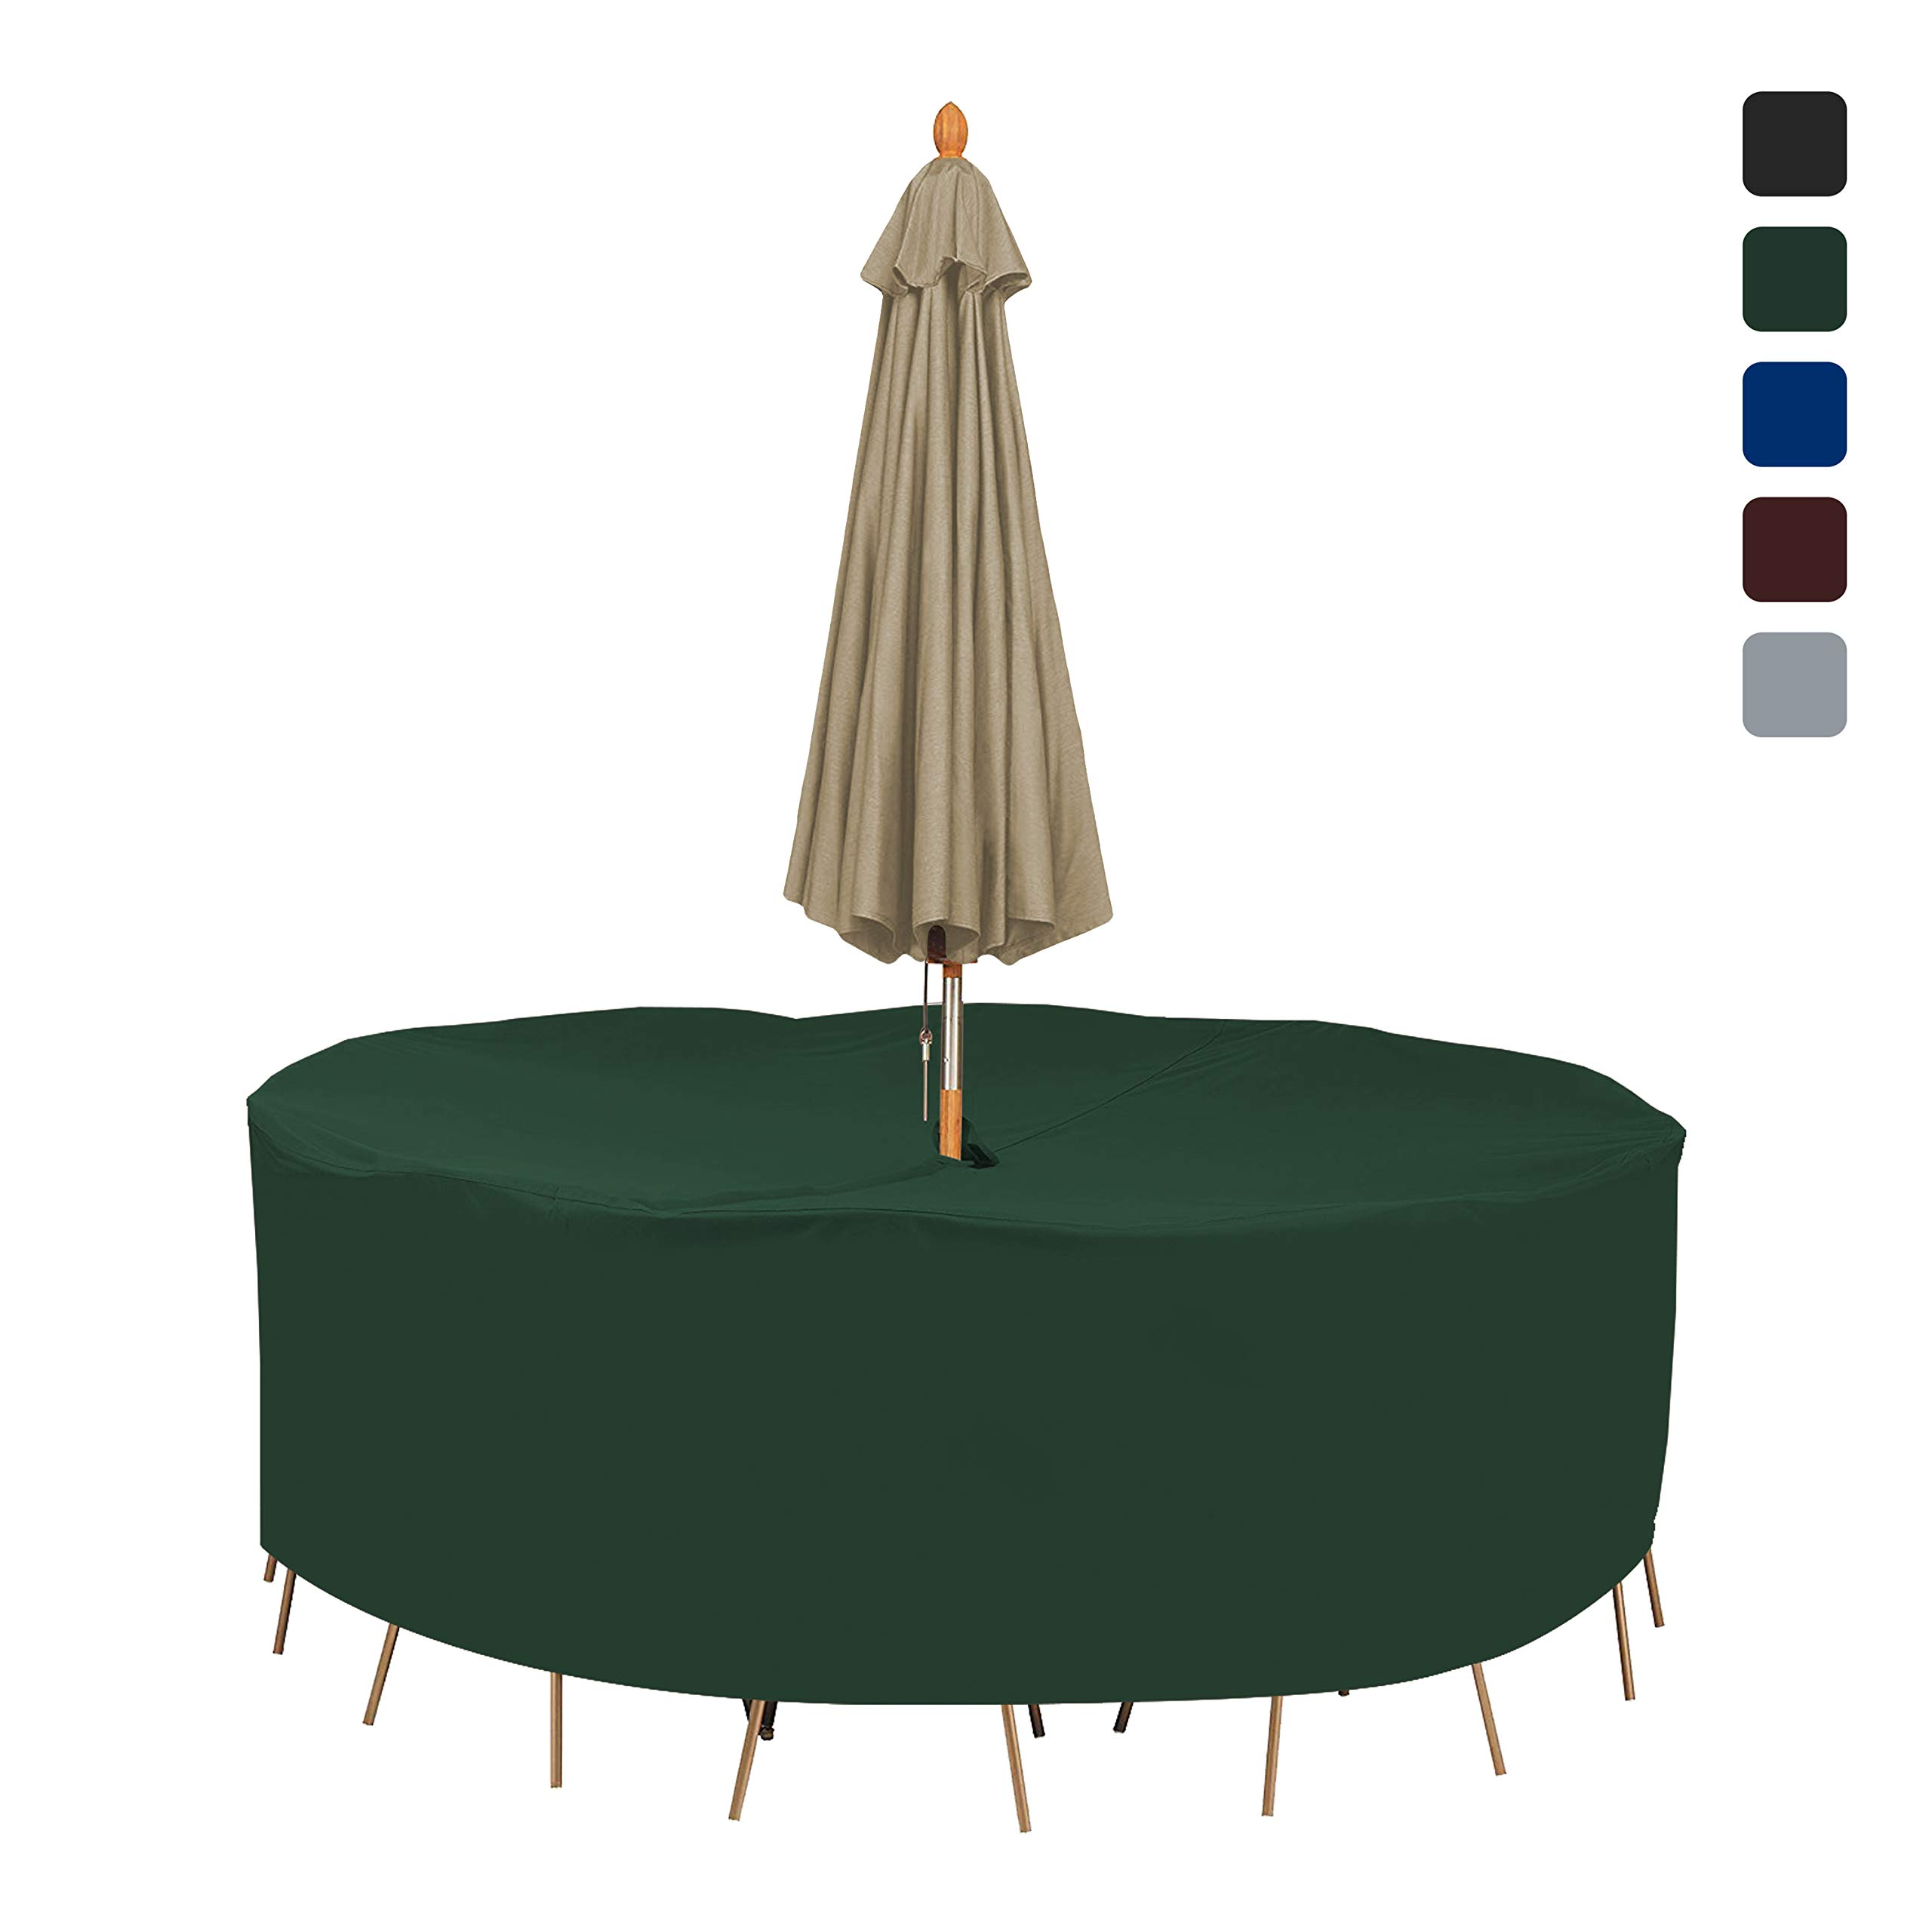 Patio Round Table & Chair Set Cover with Umbrella Hole 18 Oz Waterproof - 100% UV & Weather Resistant Outdoor Table Cover with Air Pocket and Drawstring for Snug Fit (104'' Dia x 30'' H, Green)